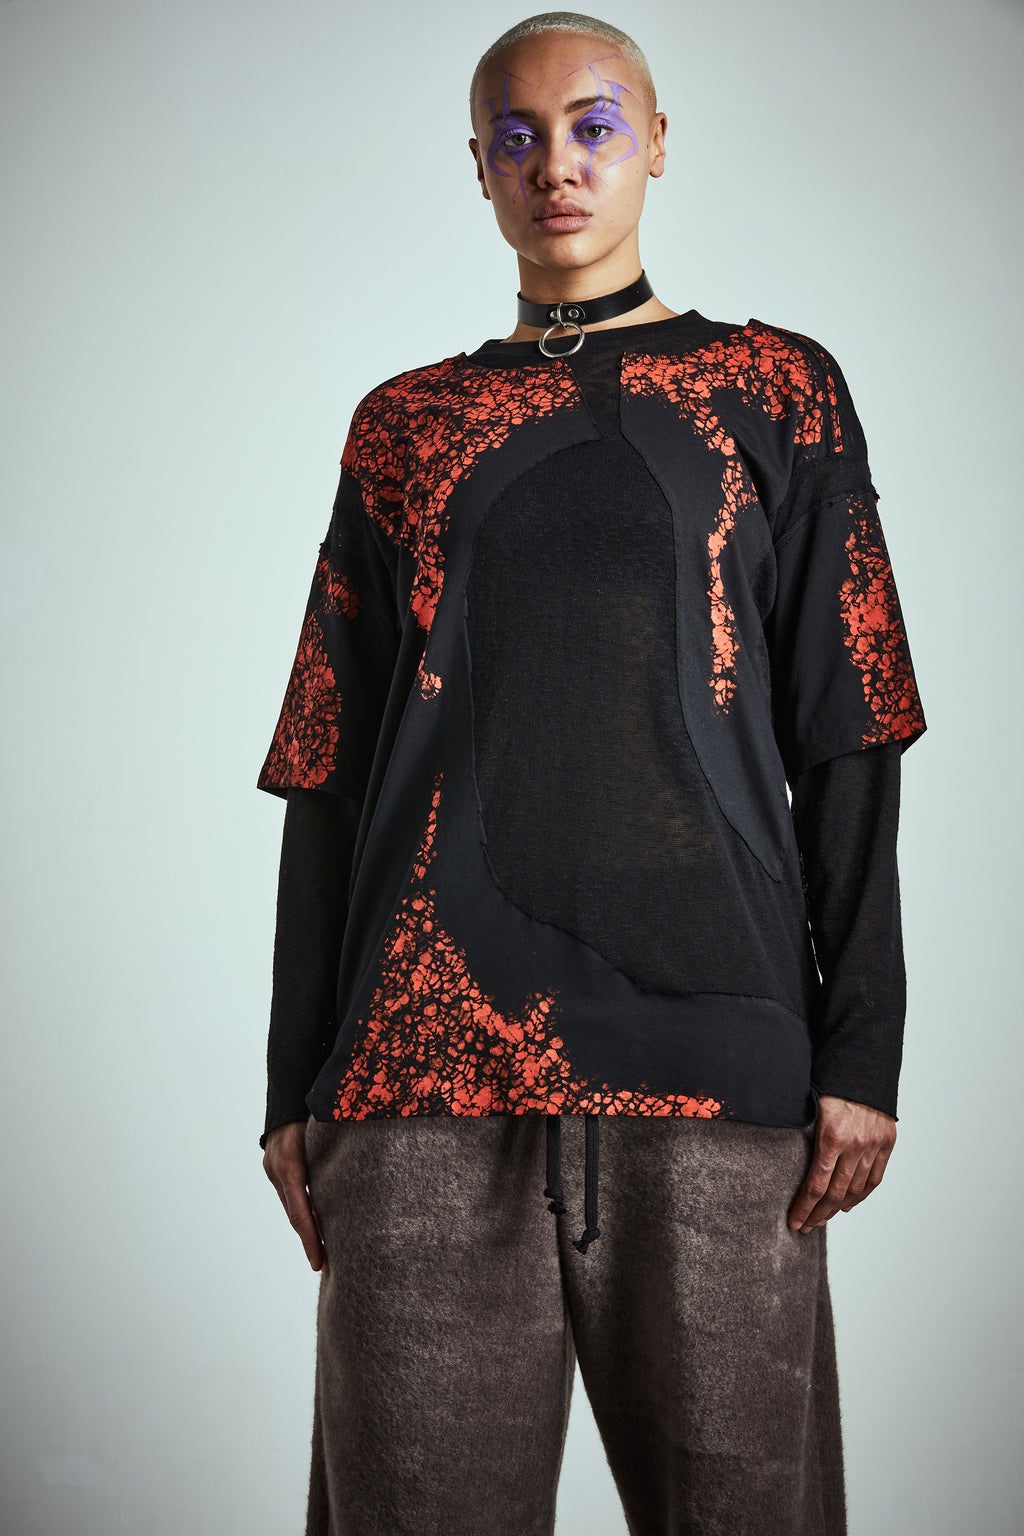 INFECTED LONG SLEEVES T-SHIRT